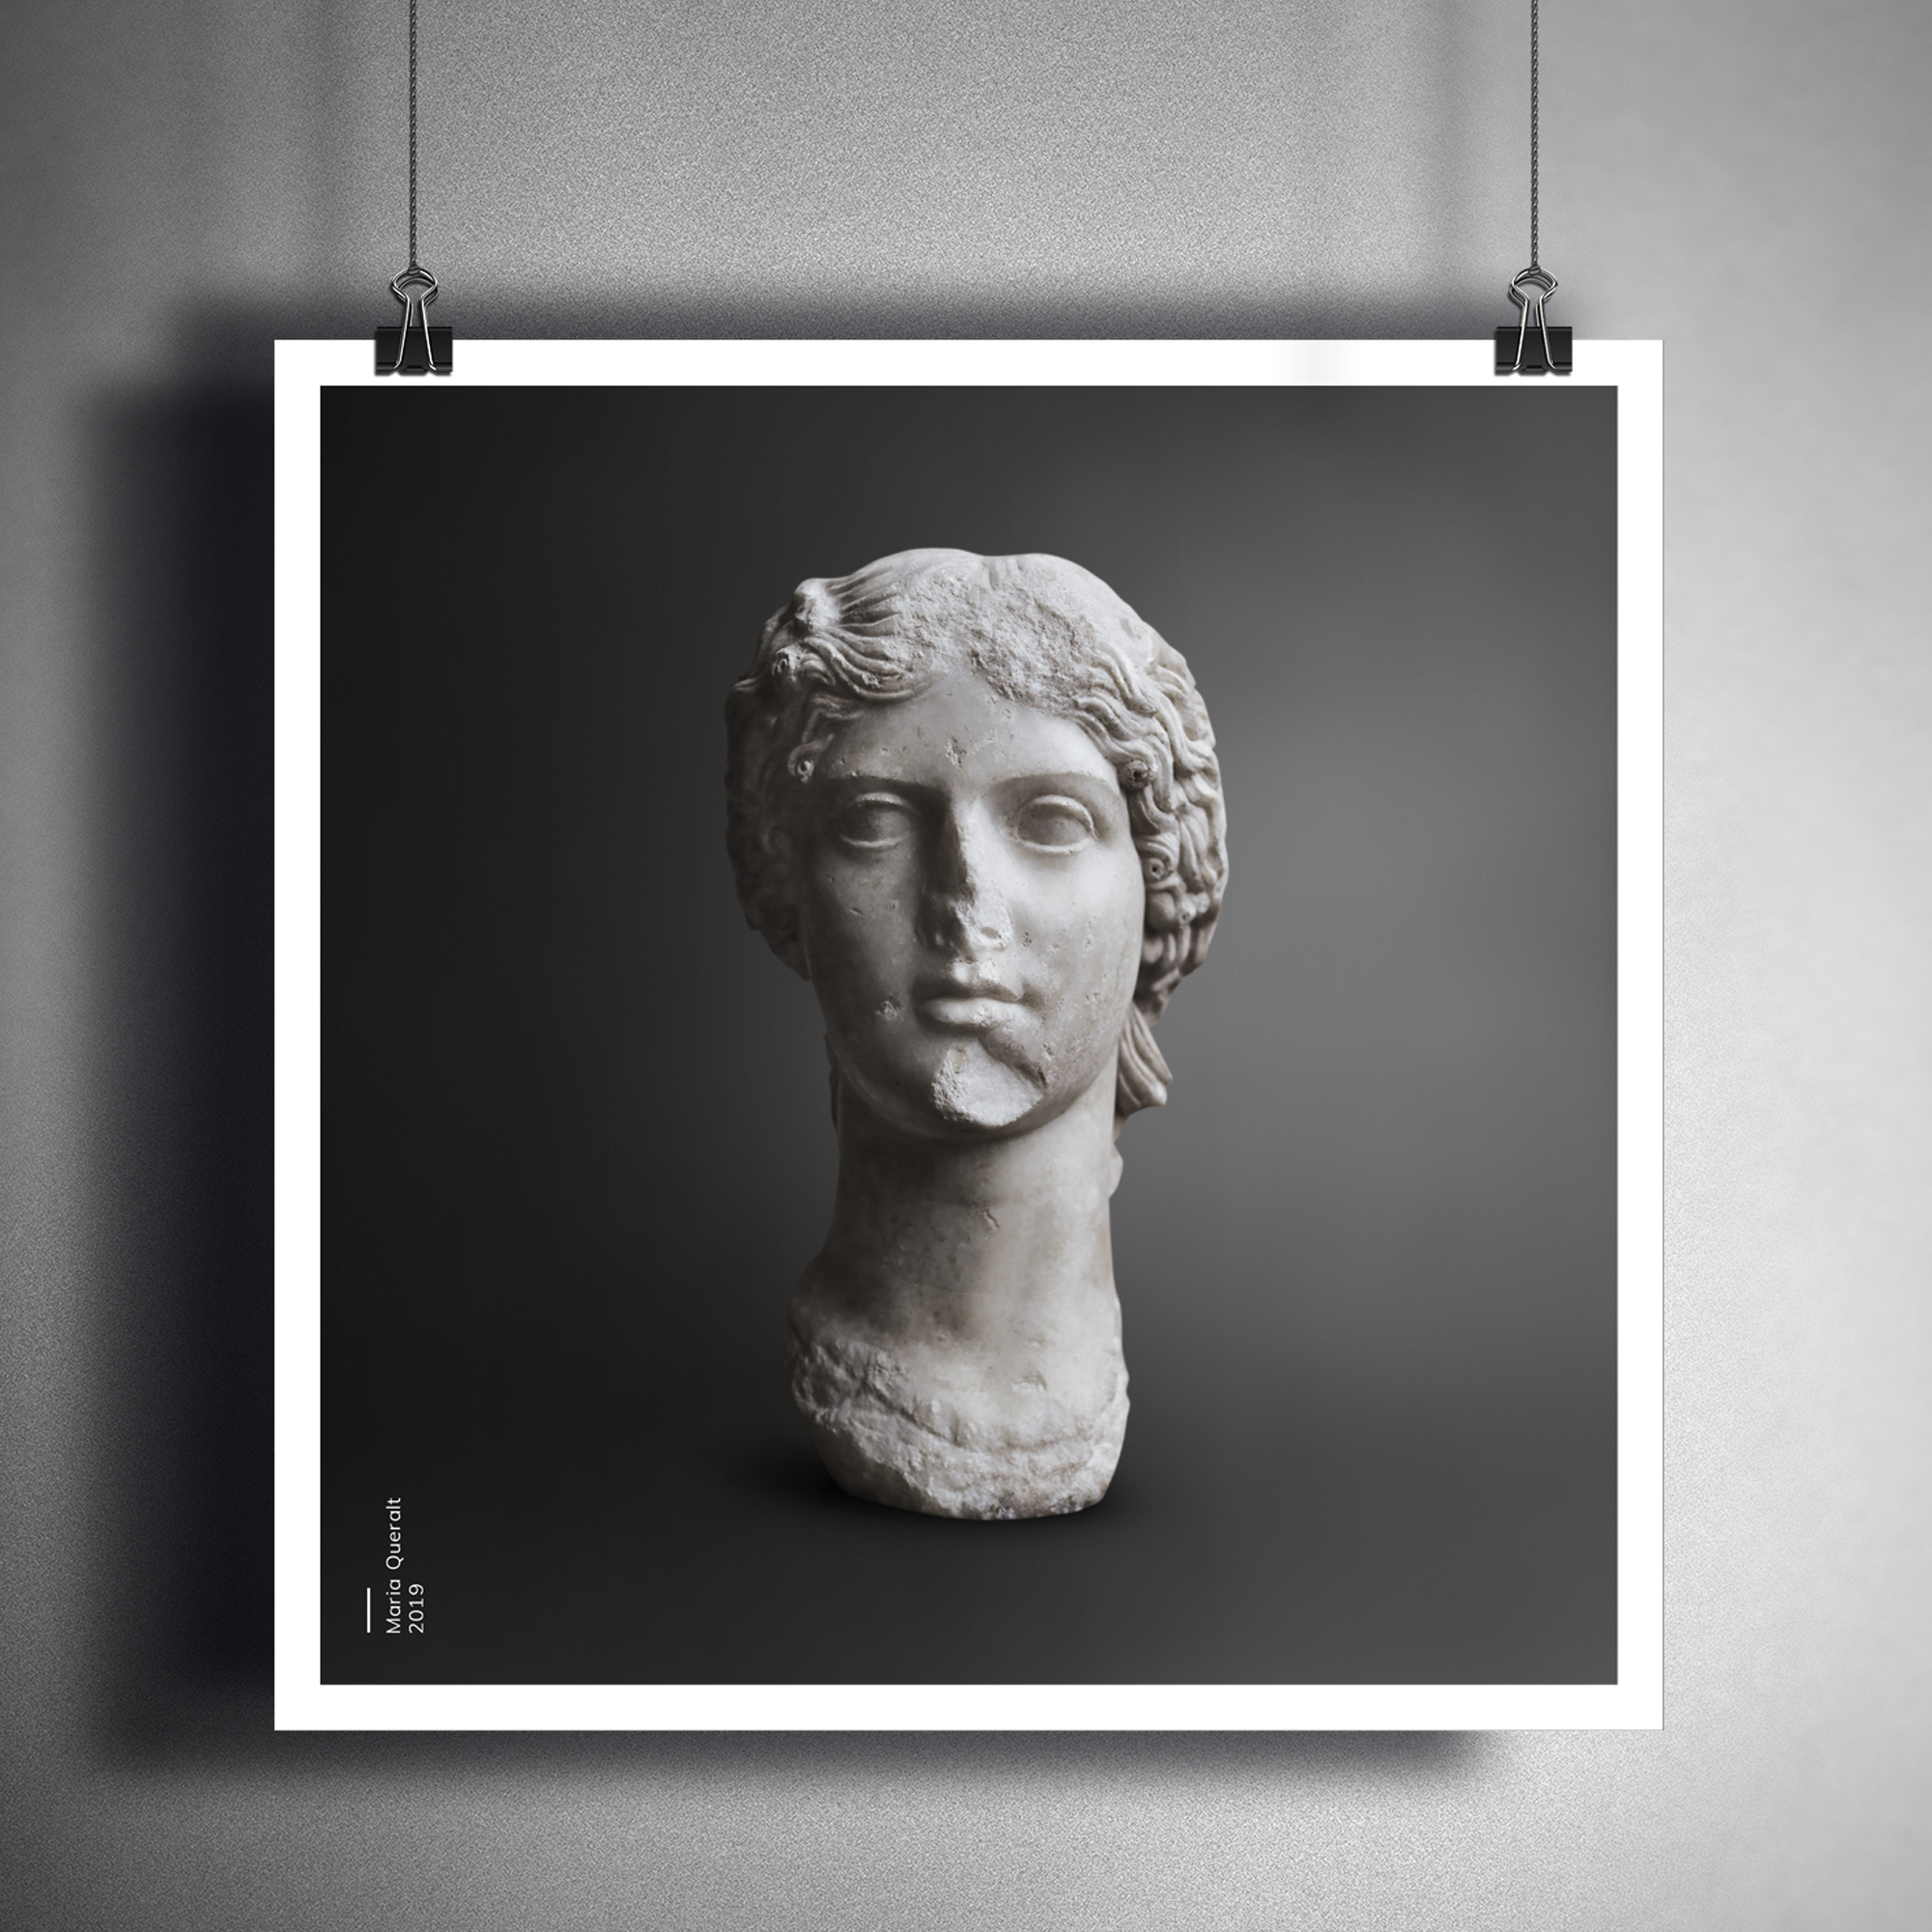 Framed photo on wall of the Sculpture of Agrippina the Elder, mother of Roman Emperor Caligula, Louvre Museum, Paris. Part of the Ancient Influencers Photography series by Maria Queralt. Photography and retouche by Maria Queralt